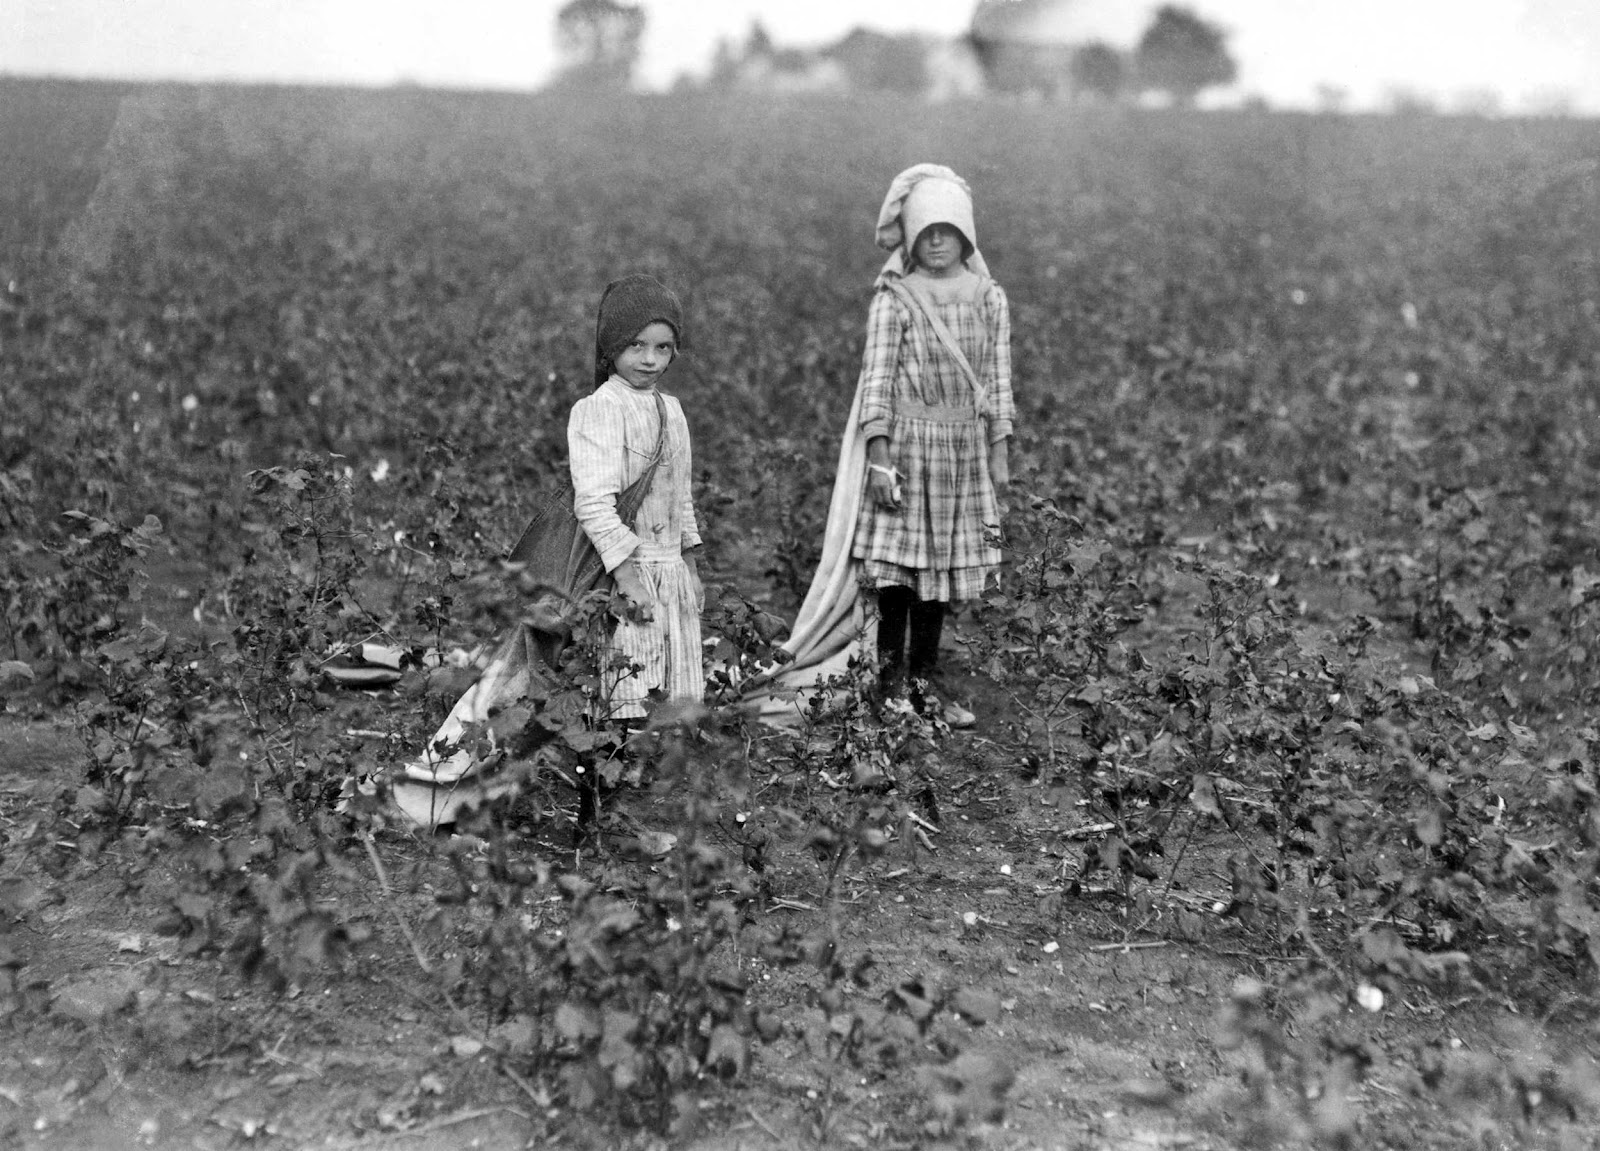 an analysis of the farmers discontent in the 1800s Free essays on winter discontent agrarian discontent in the late 1800's - why the farmers were wrong cultural analysis of the coldest winter ever.